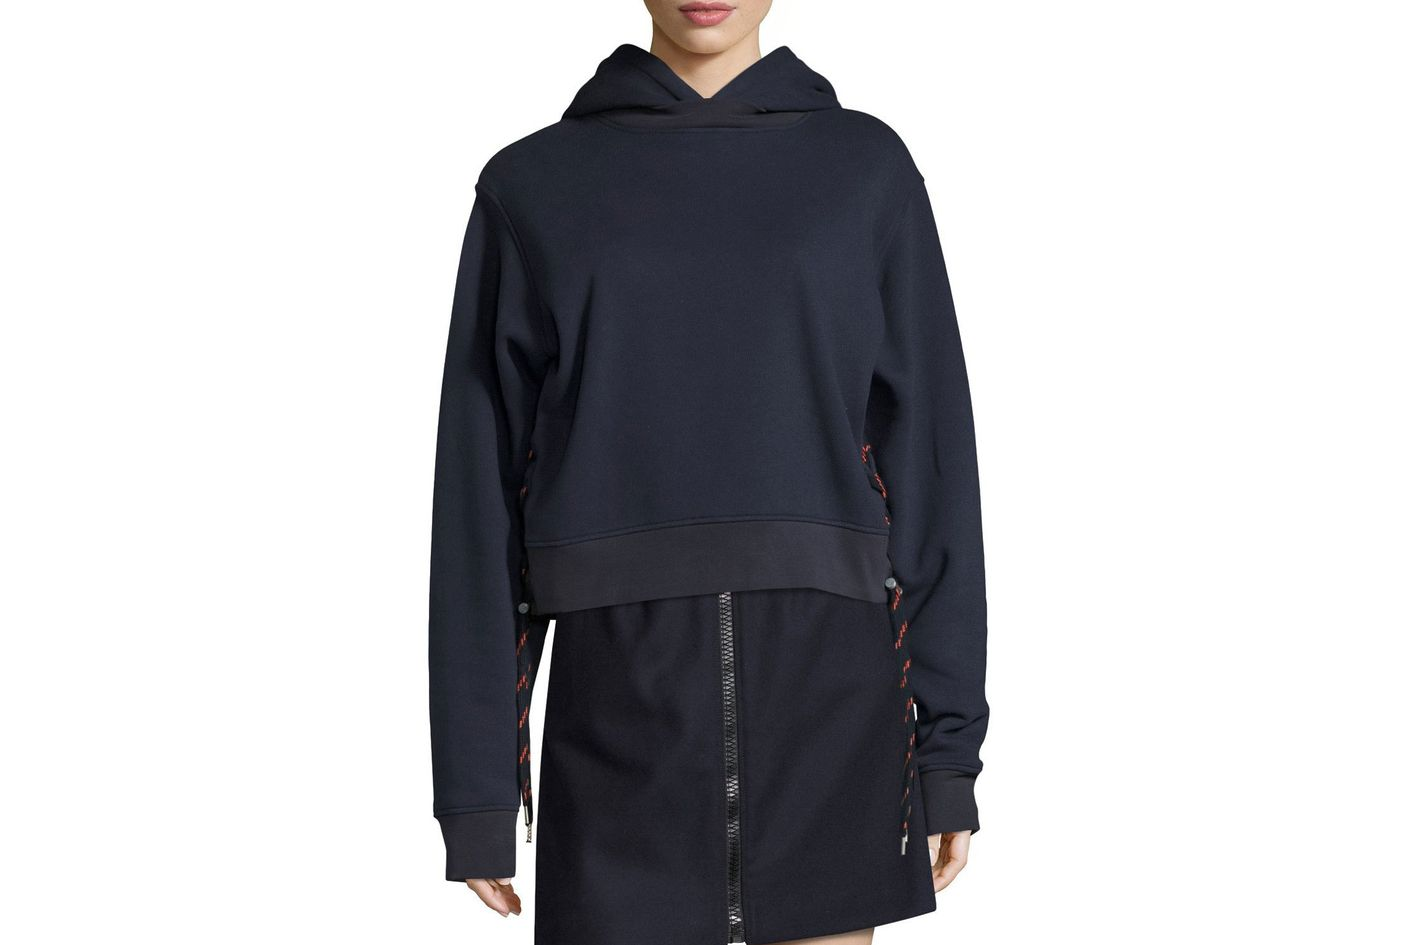 Acne Studios Bale Sweatshirt Hoodie With Shoelace Sides, Navy